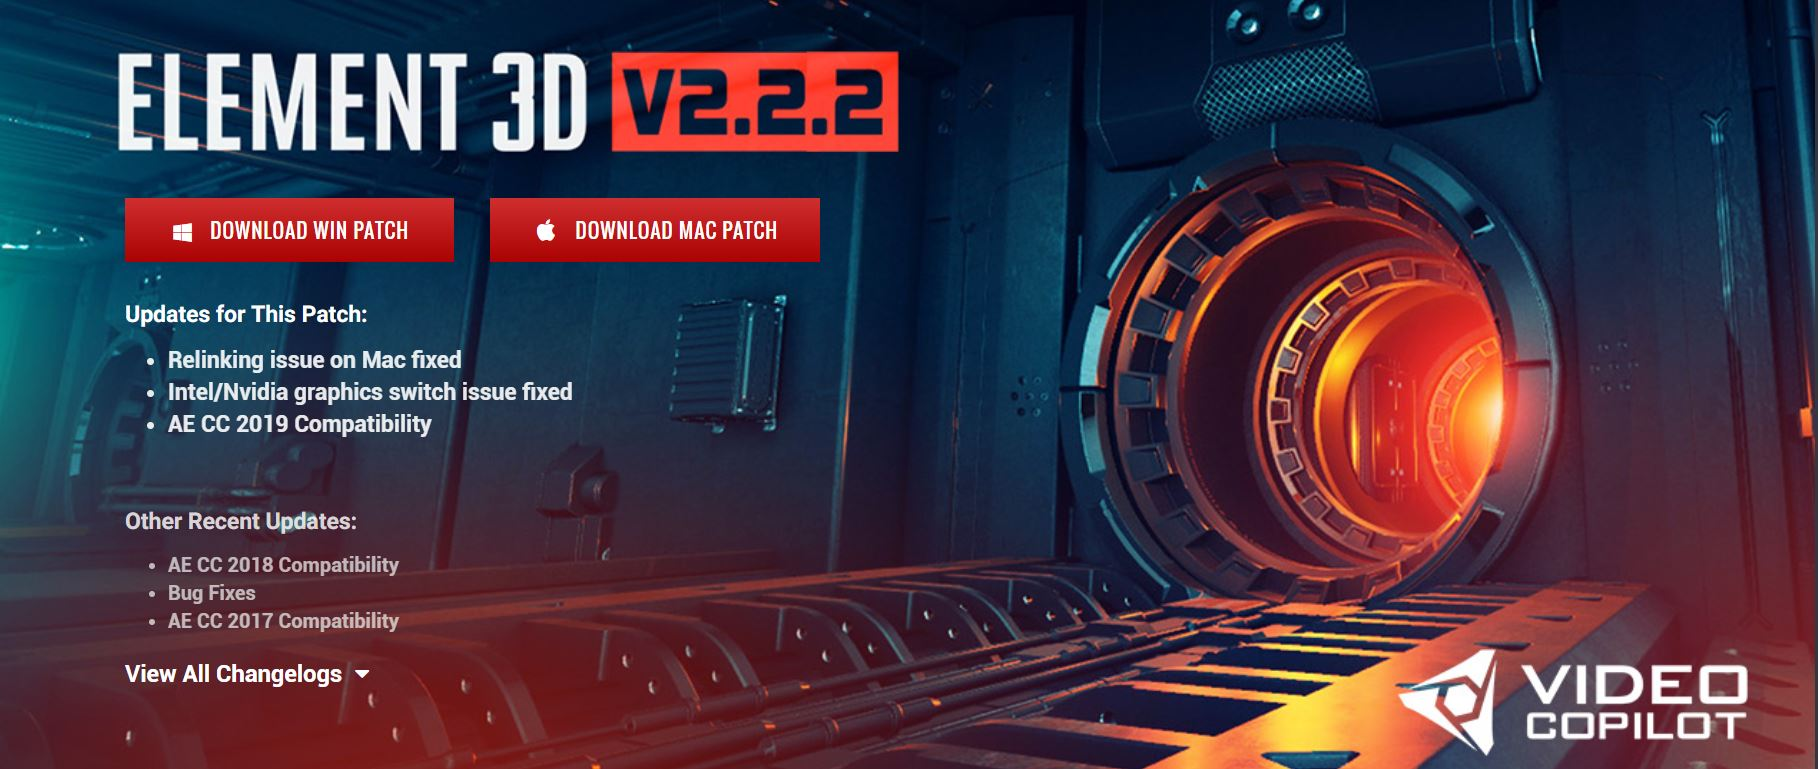 ELEMENT 3D V2.2.2 BUILD 2168 (WIN/MAC) – VIDEOCOPILOT